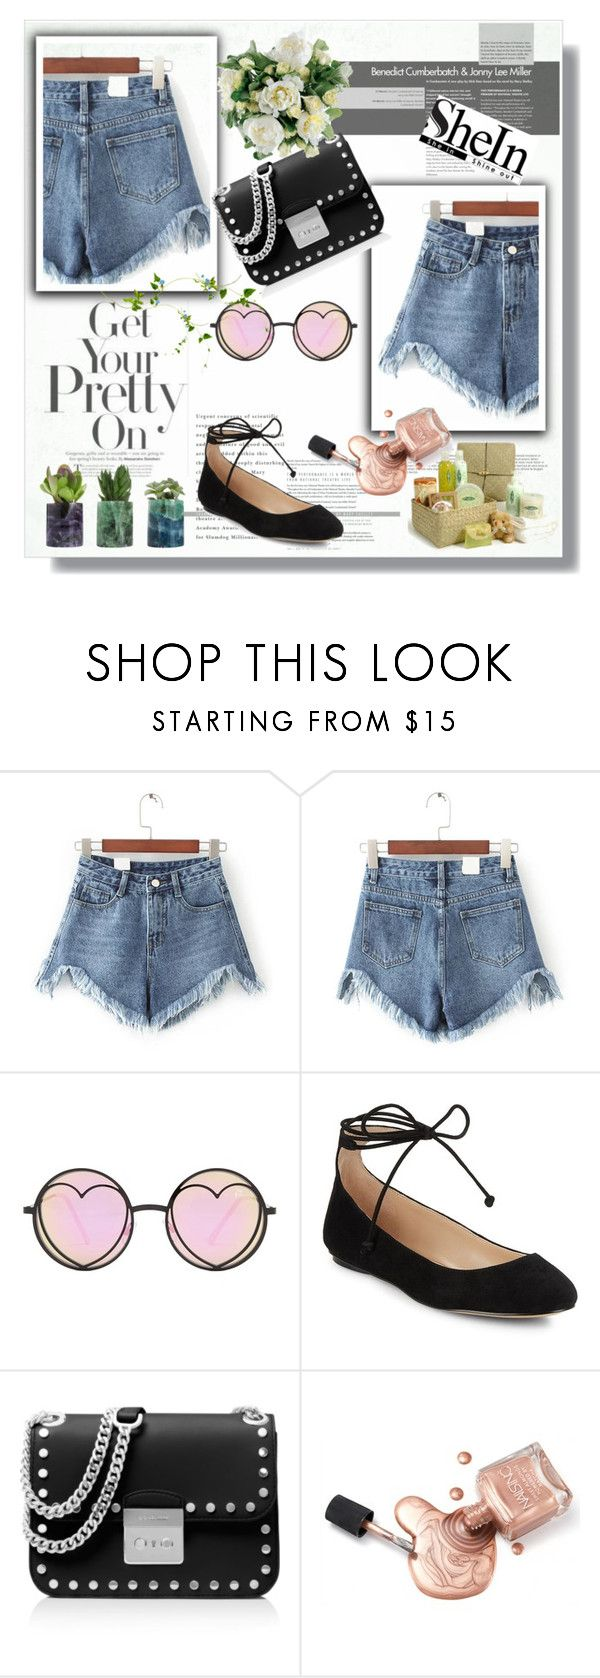 """shein"" by perfex ❤ liked on Polyvore featuring Betsey Johnson, Karl Lagerfeld, MICHAEL Michael Kors, Guide London and CO"